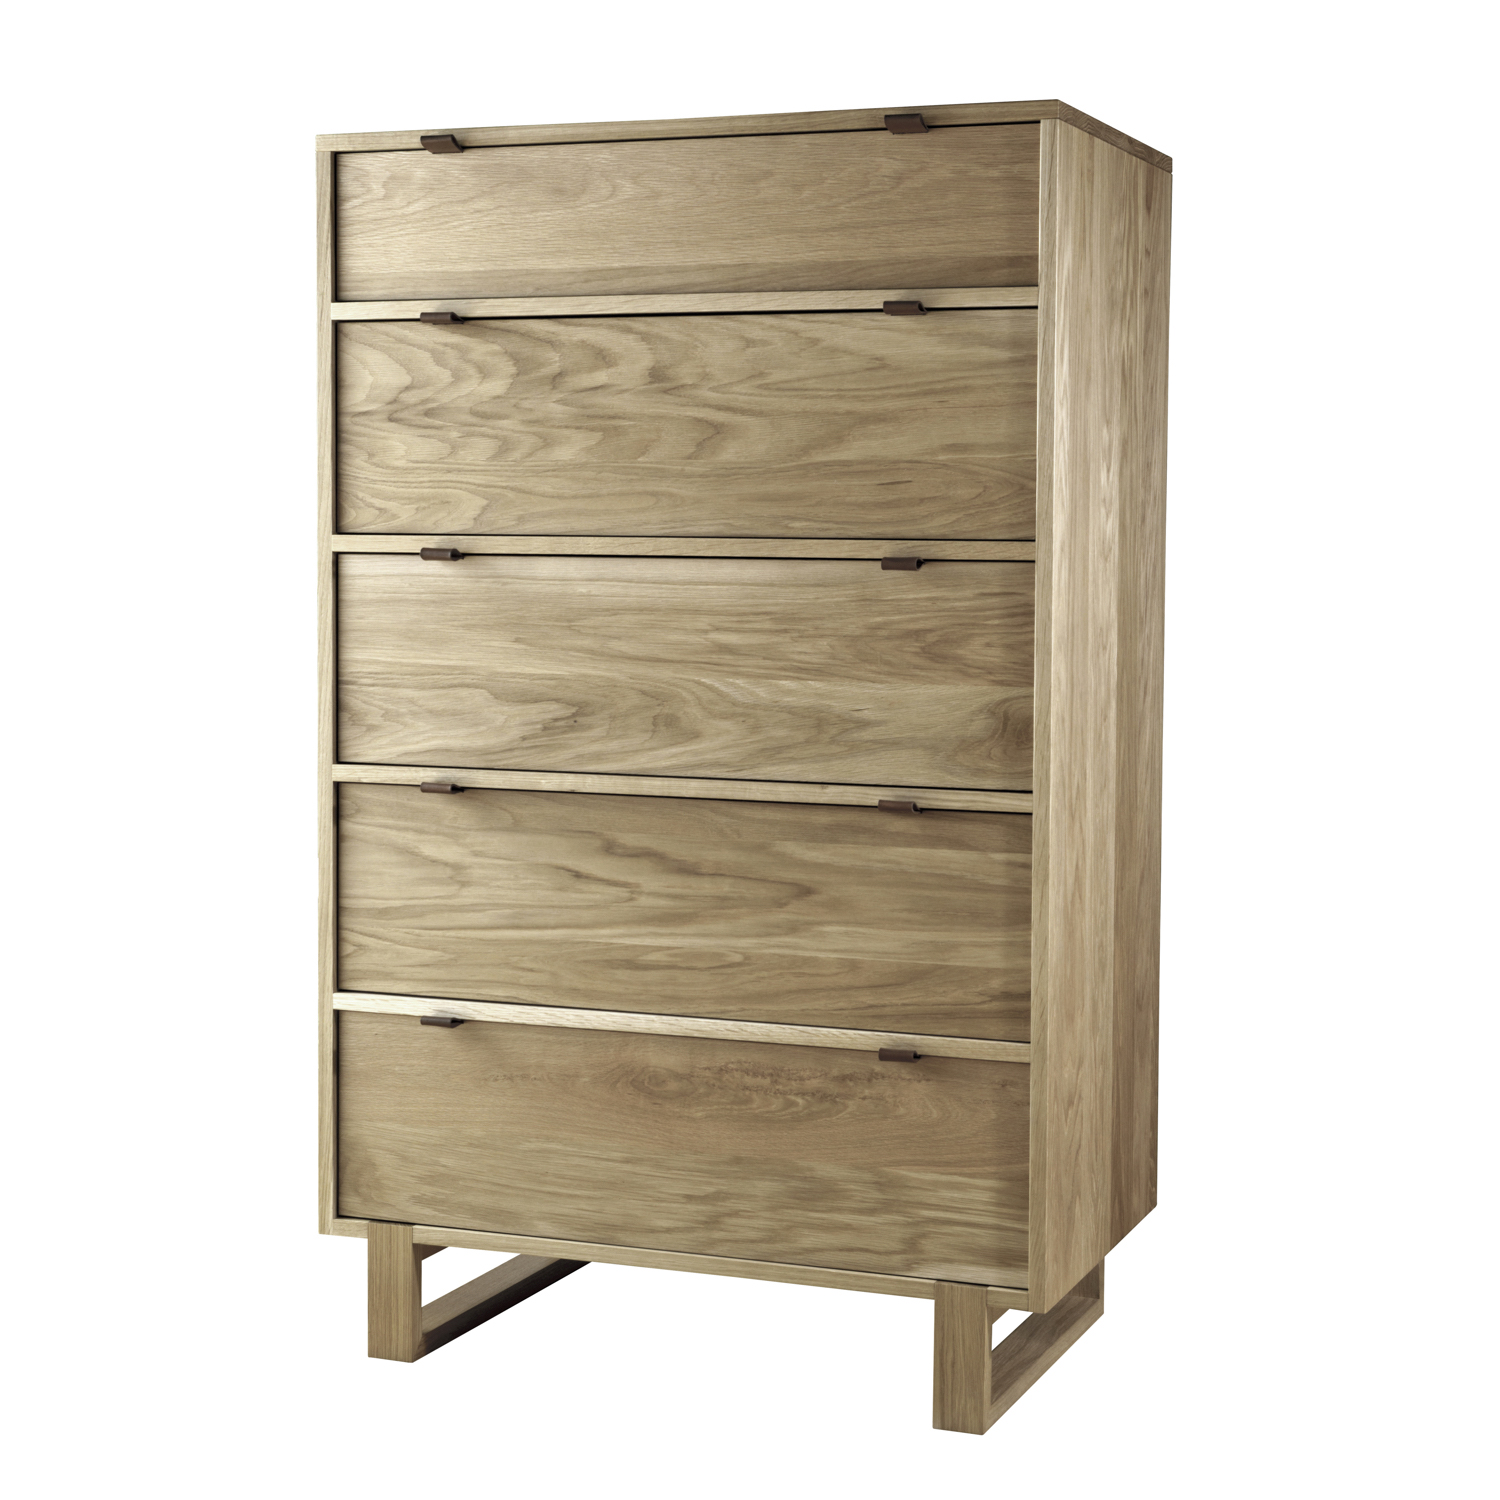 FallingbrookChest_of_Drawers_A-2-6.jpg